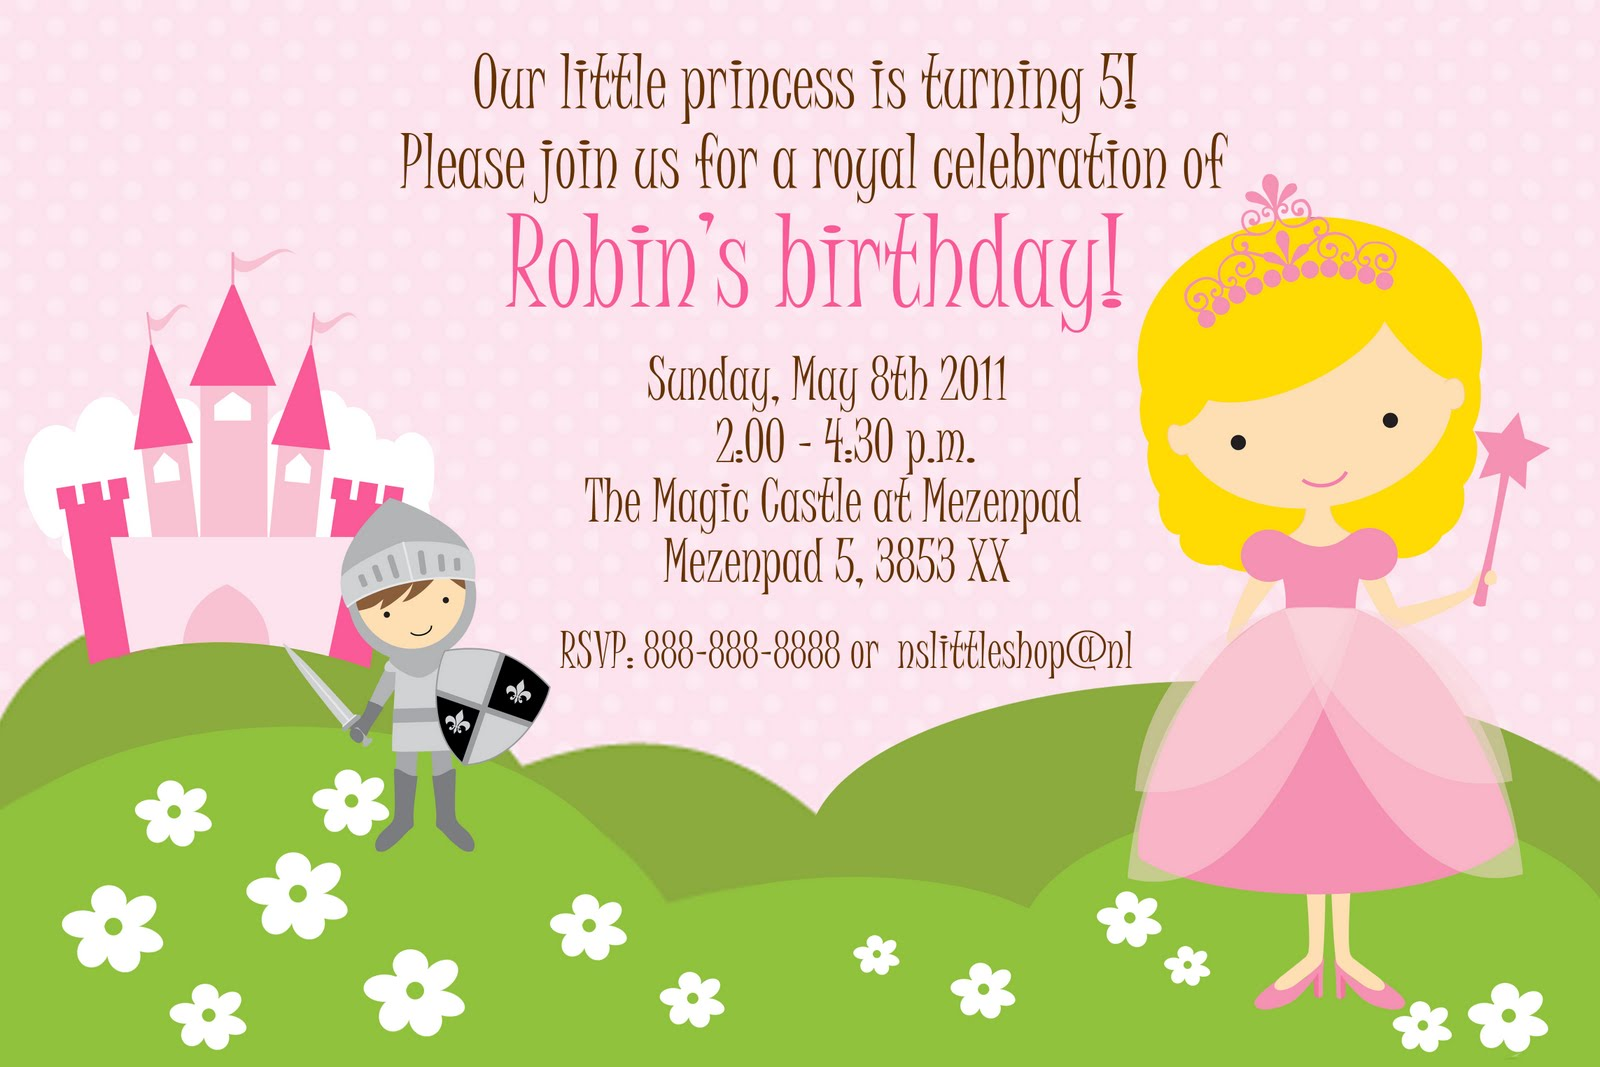 nslittleshop party decorations and more: Princesses and ...